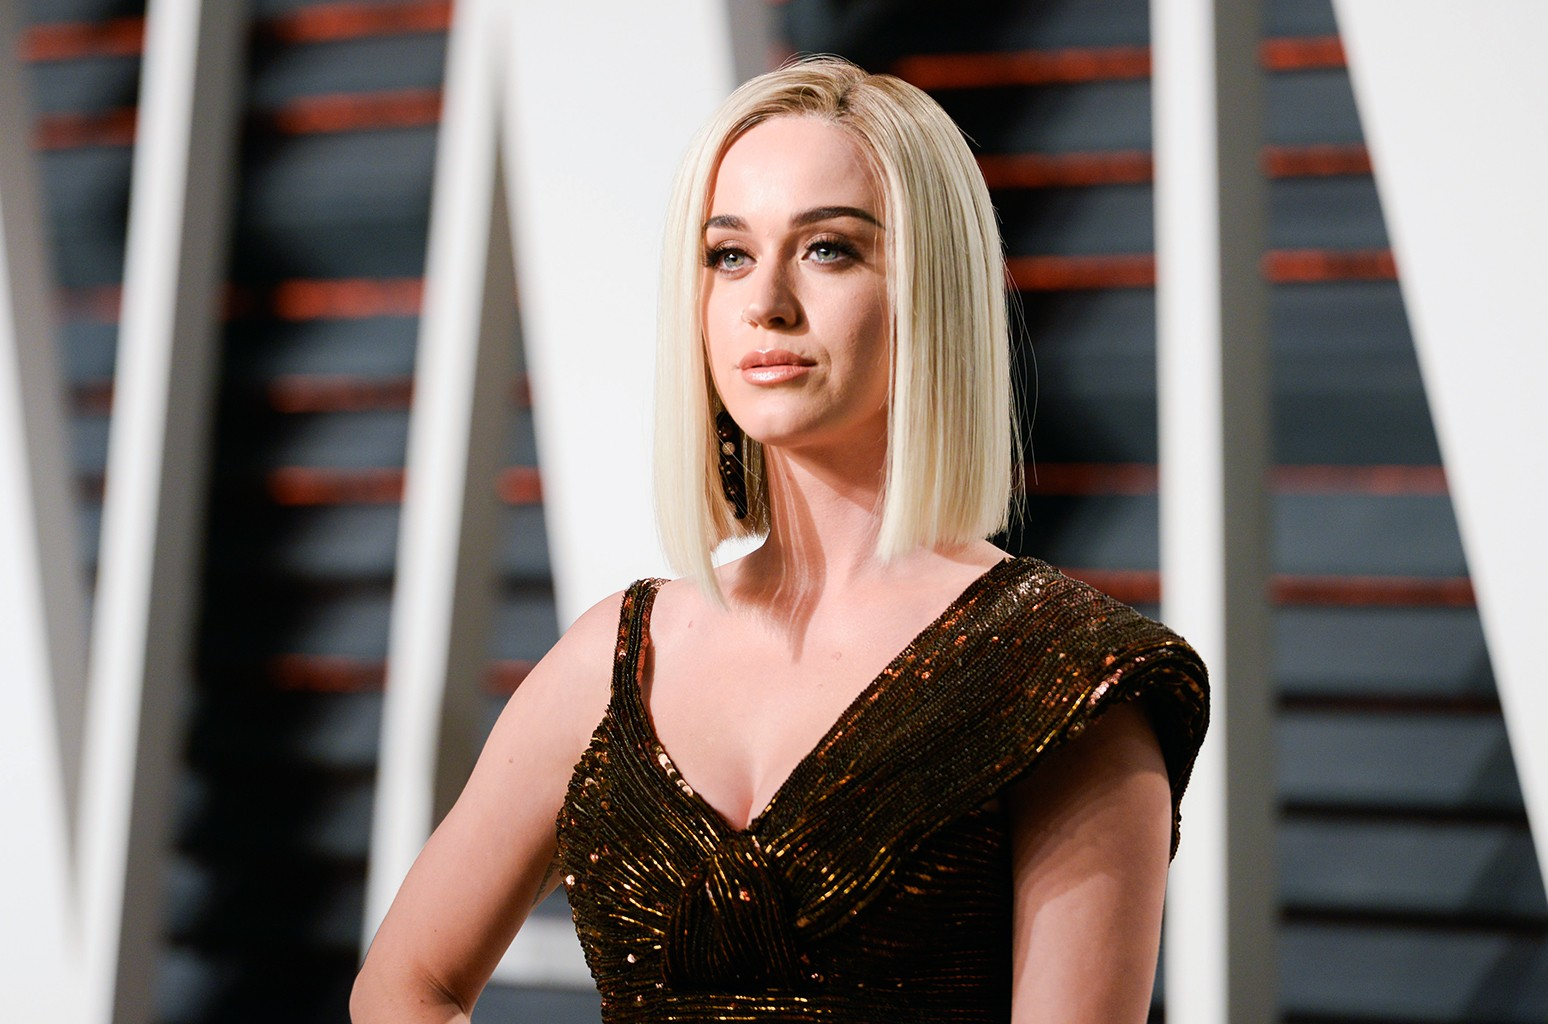 Katy Perry attends the 2017 Vanity Fair Oscar Party hosted by Graydon Carter at Wallis Annenberg Center for the Performing Arts on Feb. 26, 2017 in Beverly Hills.